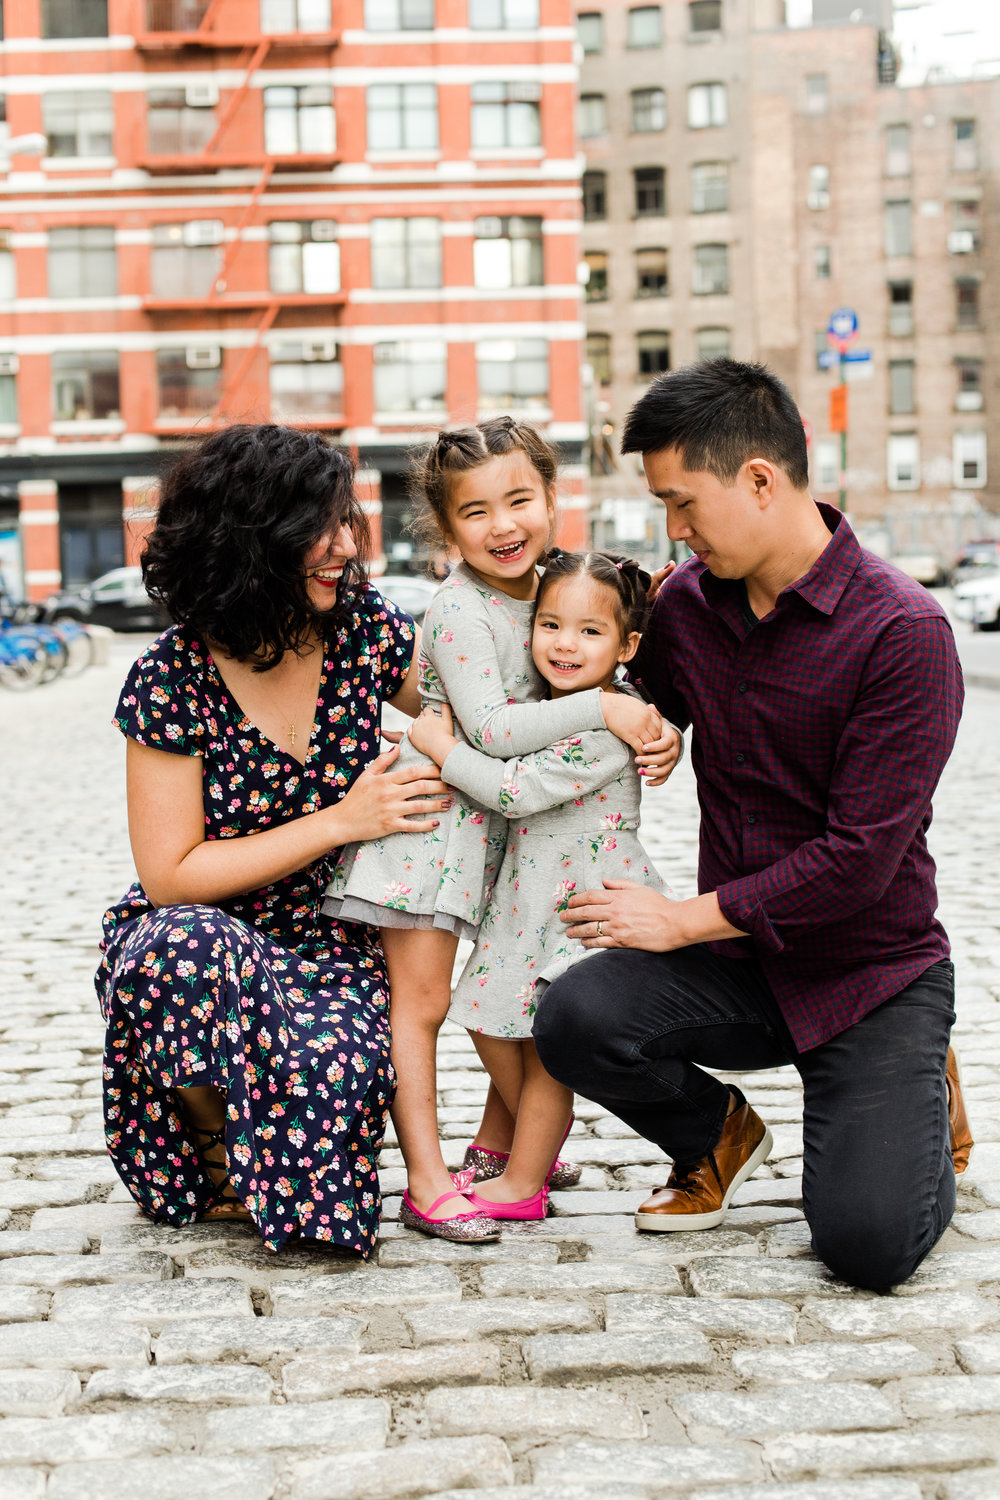 lissiephoto_loomis_nyc_family_photography67.JPG